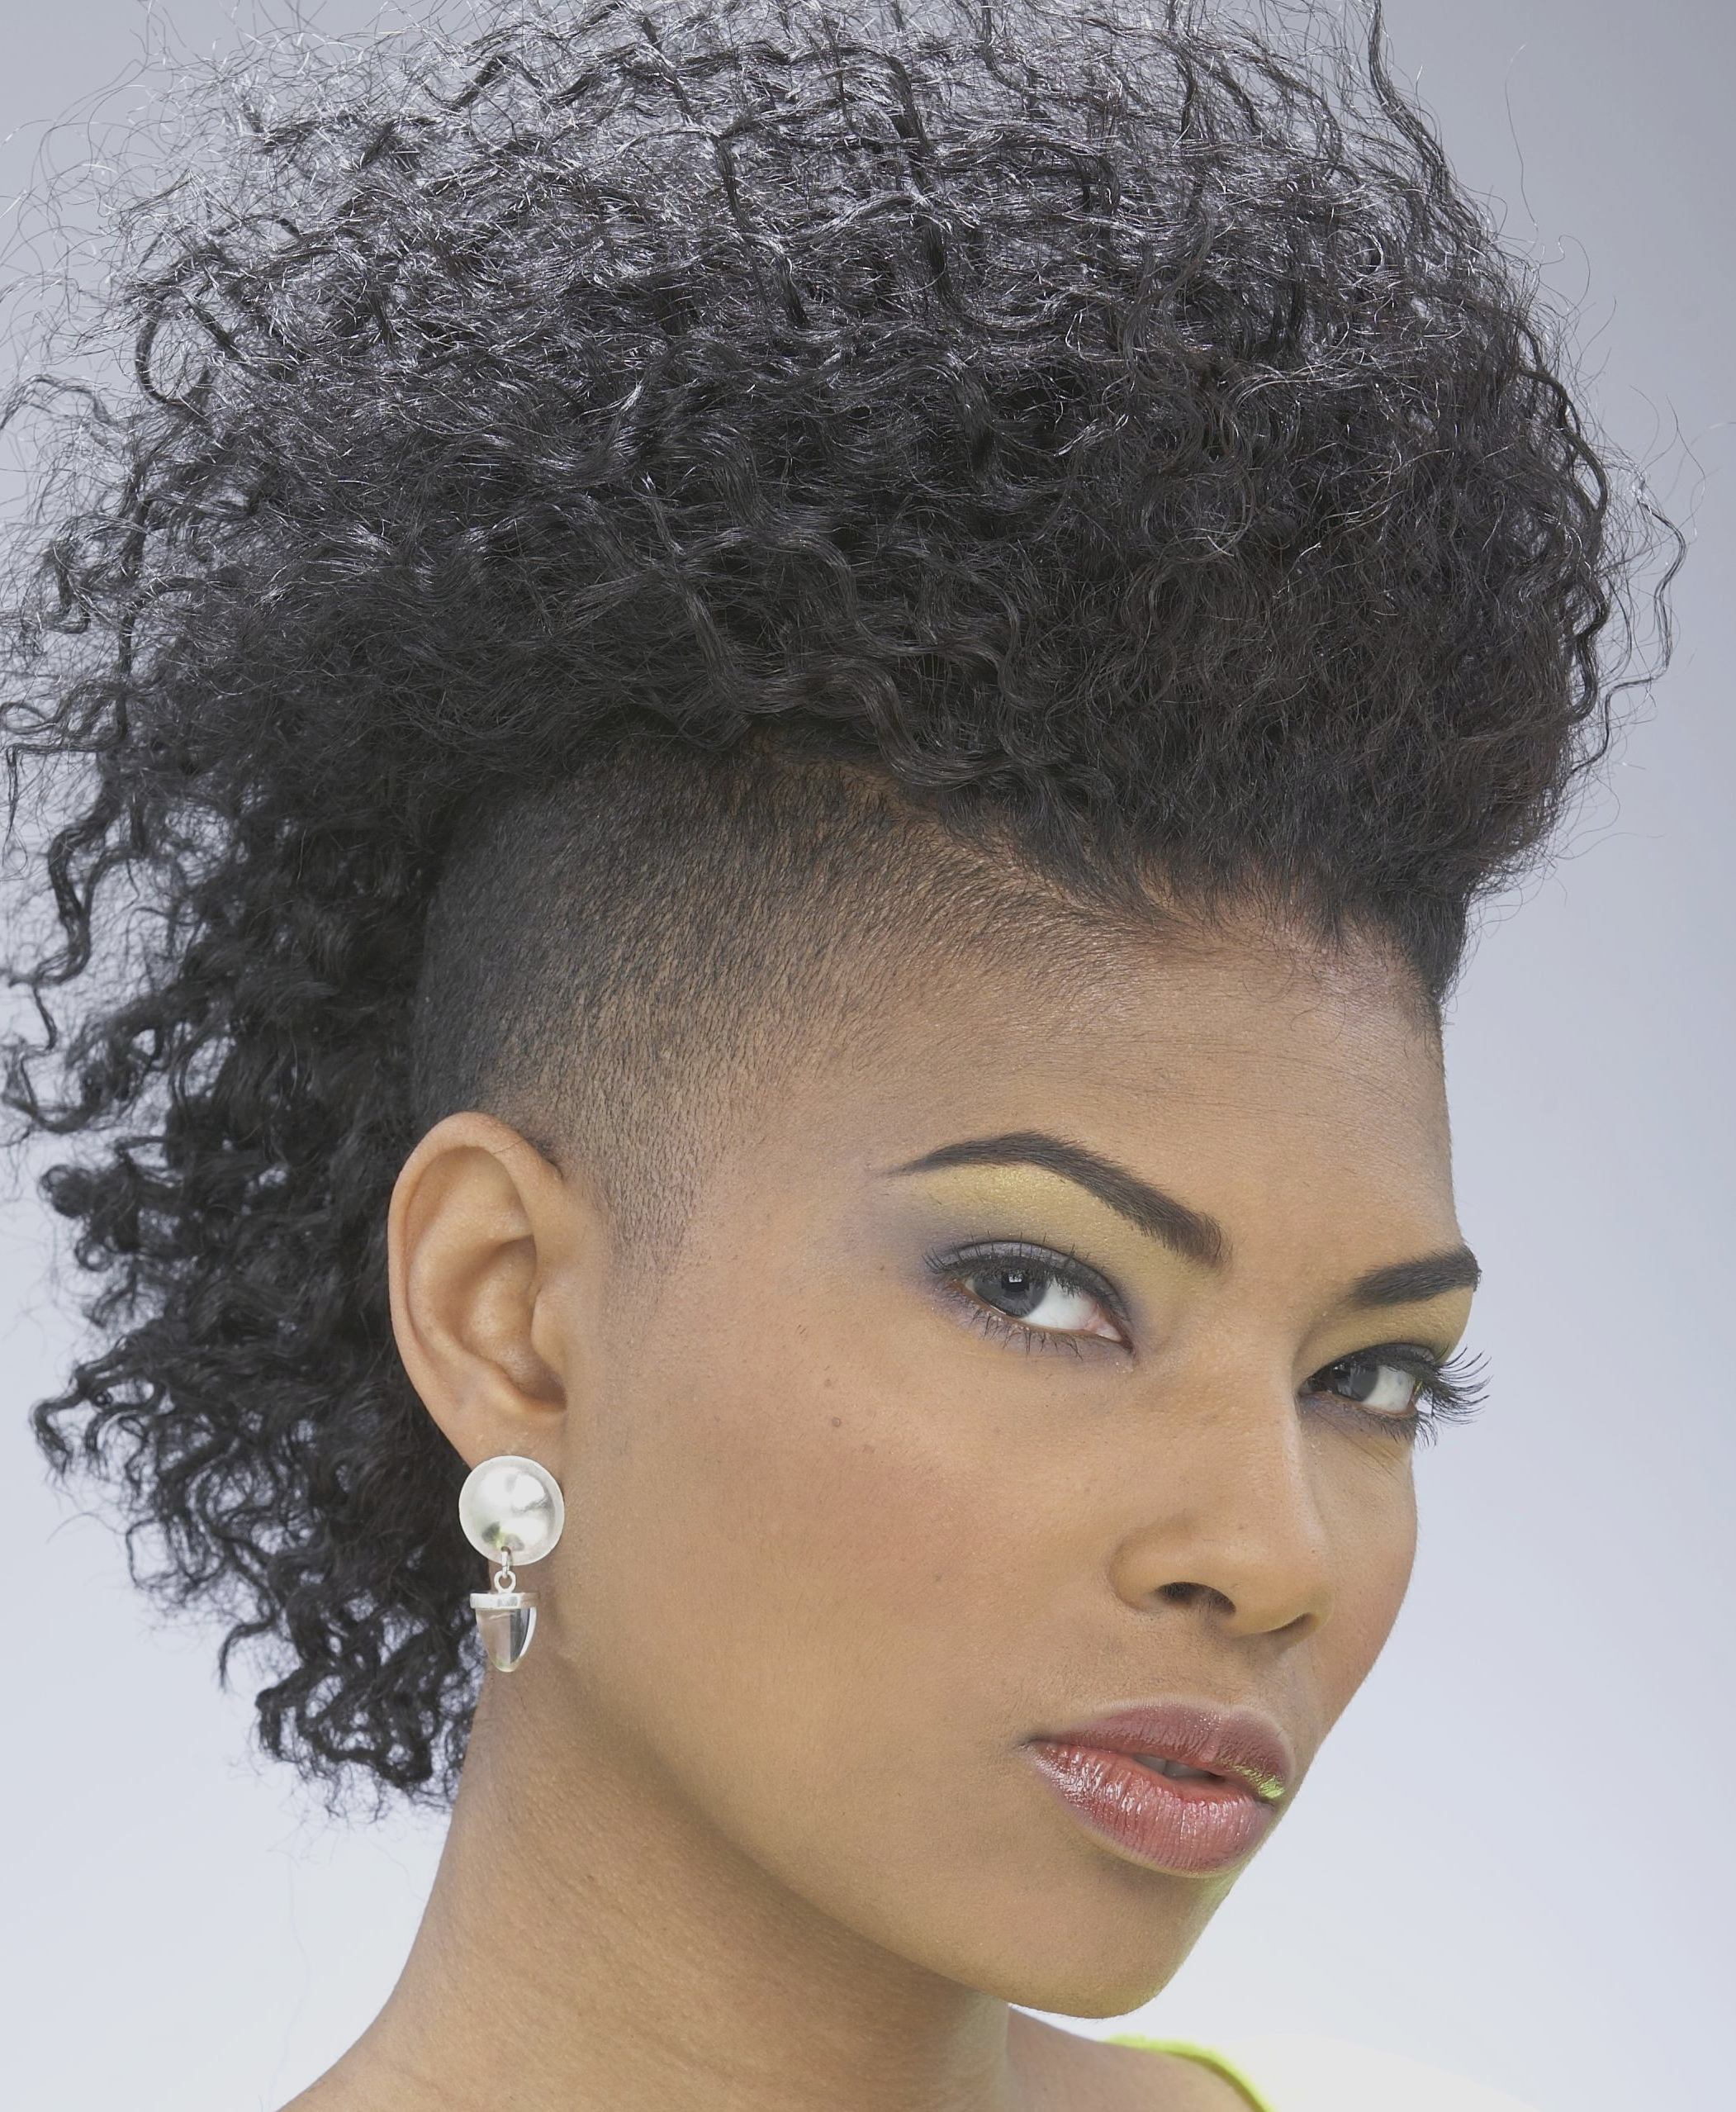 Curly Hairstyles : Fresh Short Curly Mohawk Hairstyles For Black With Preferred Mohawks Hairstyles With Curls And Design (View 7 of 20)